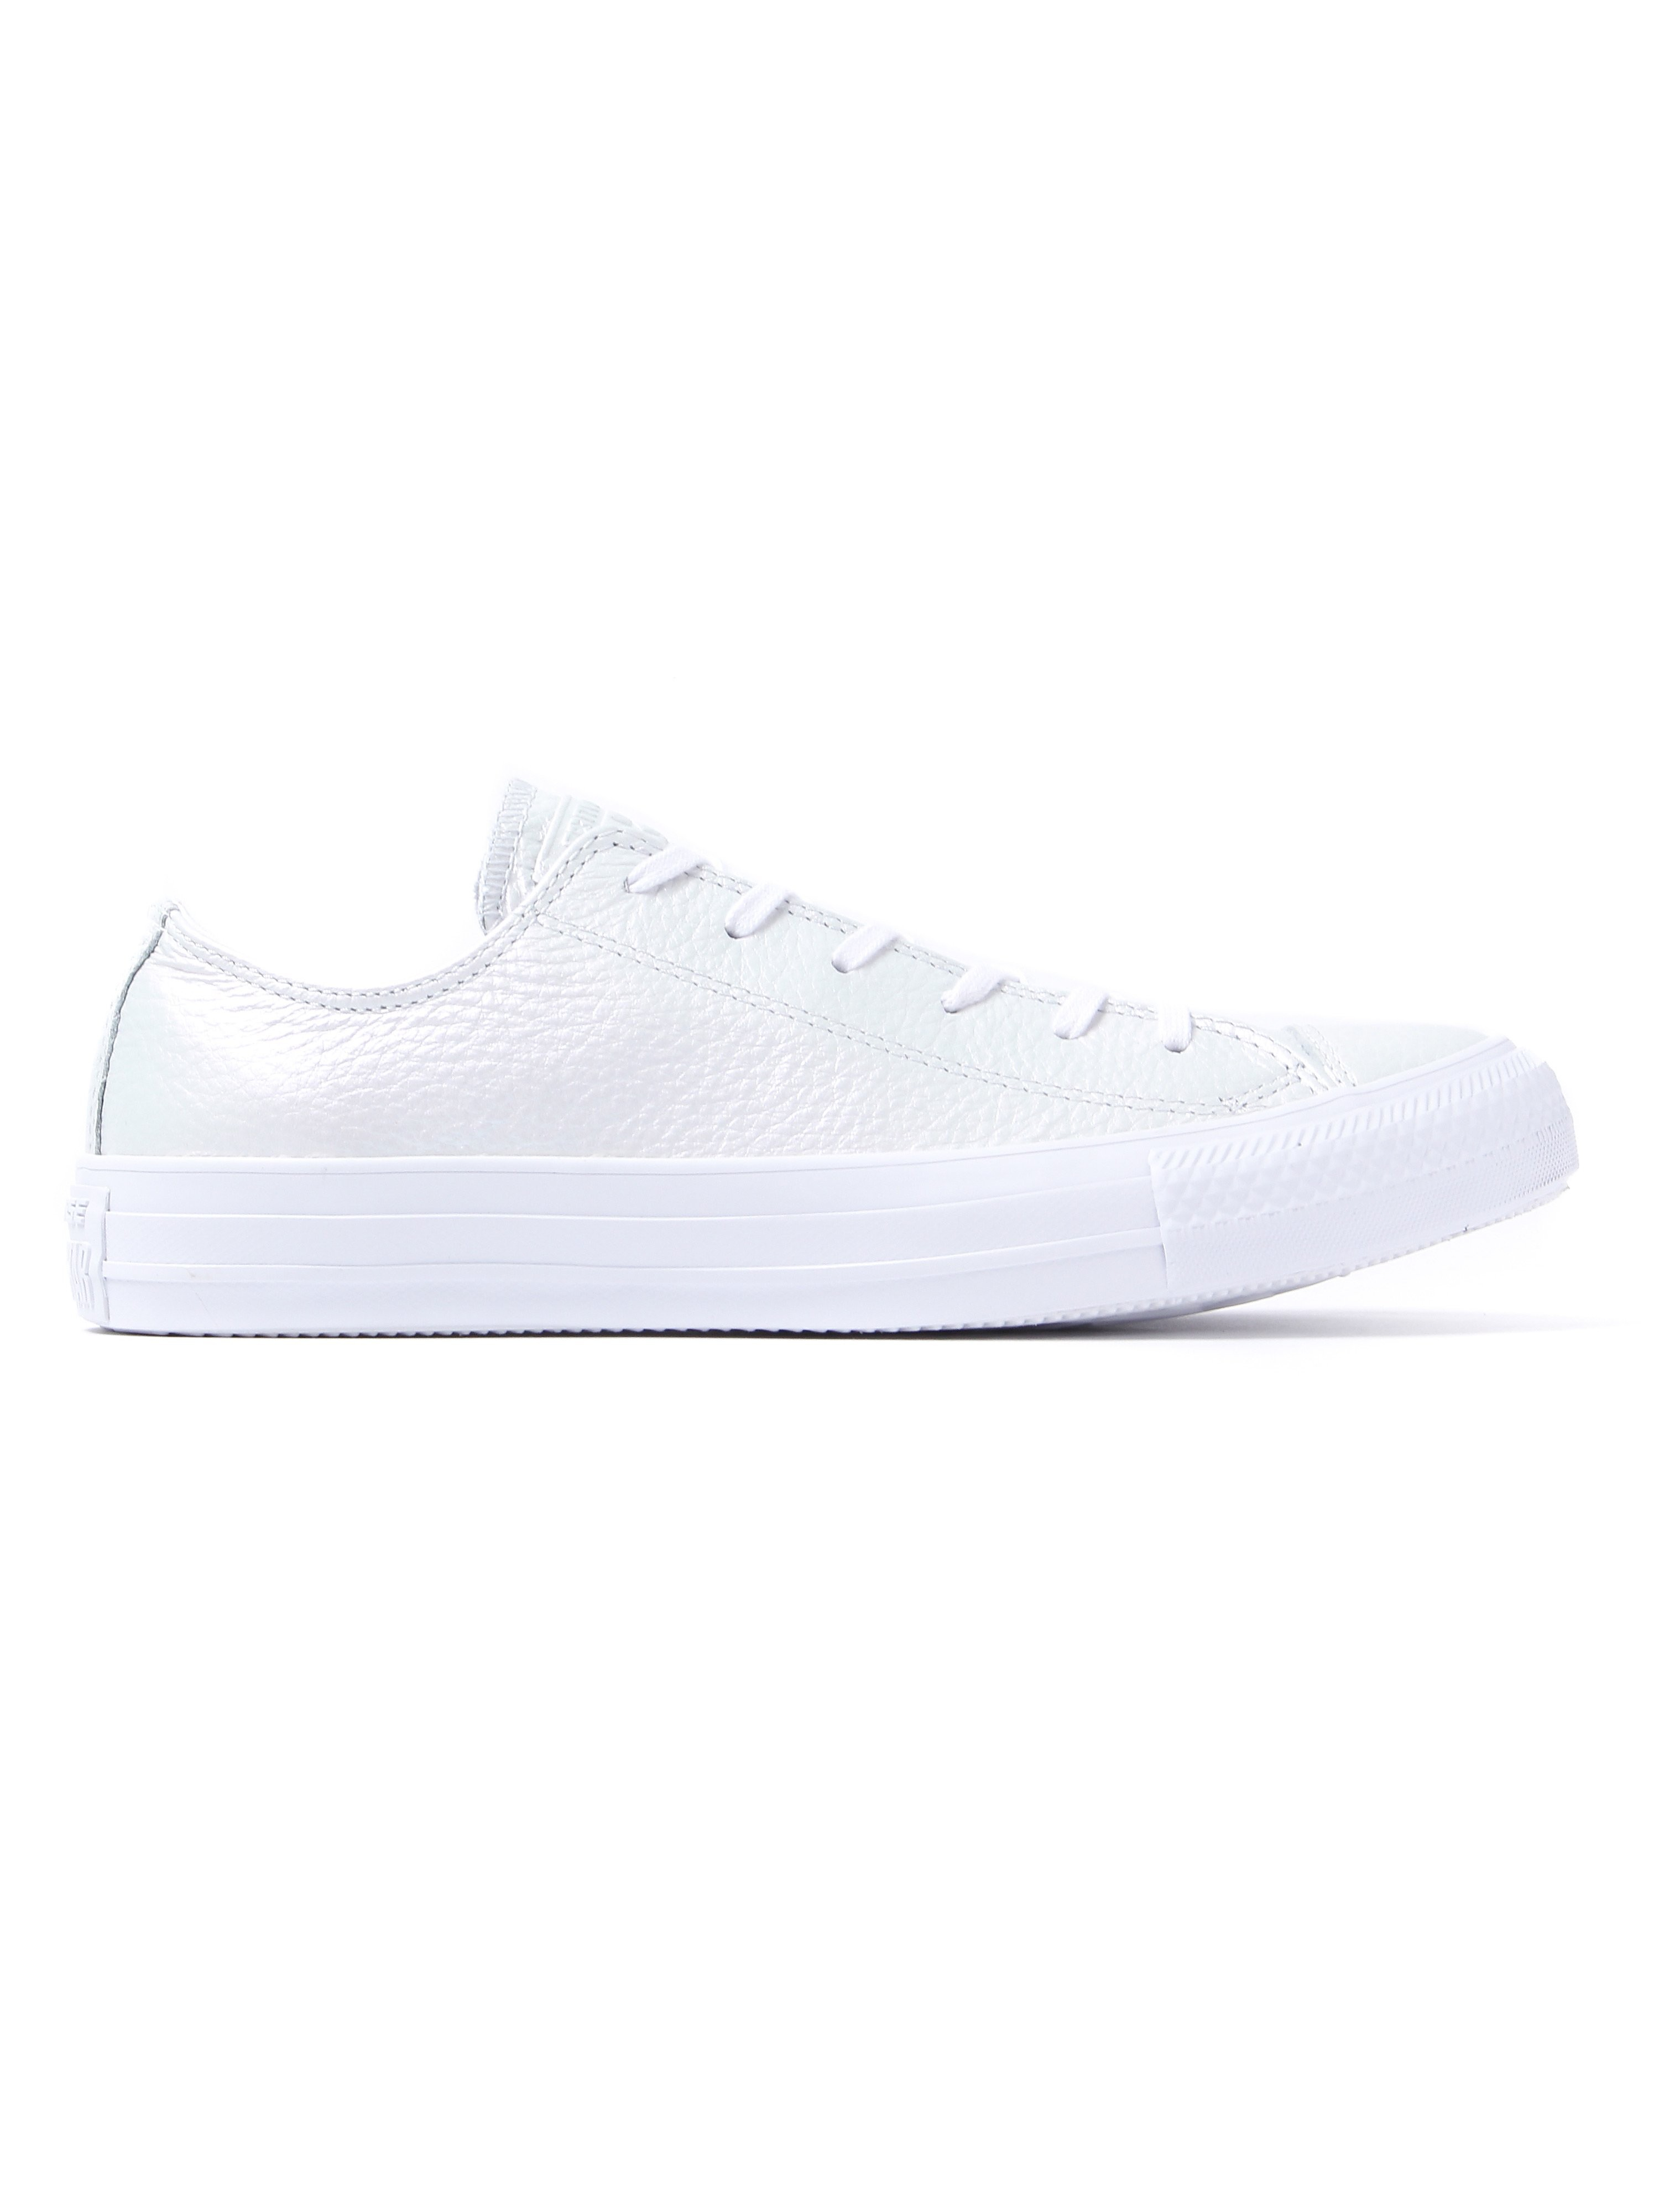 Converse Women's Chuck Taylor All Star OX Trainers - Pearled White